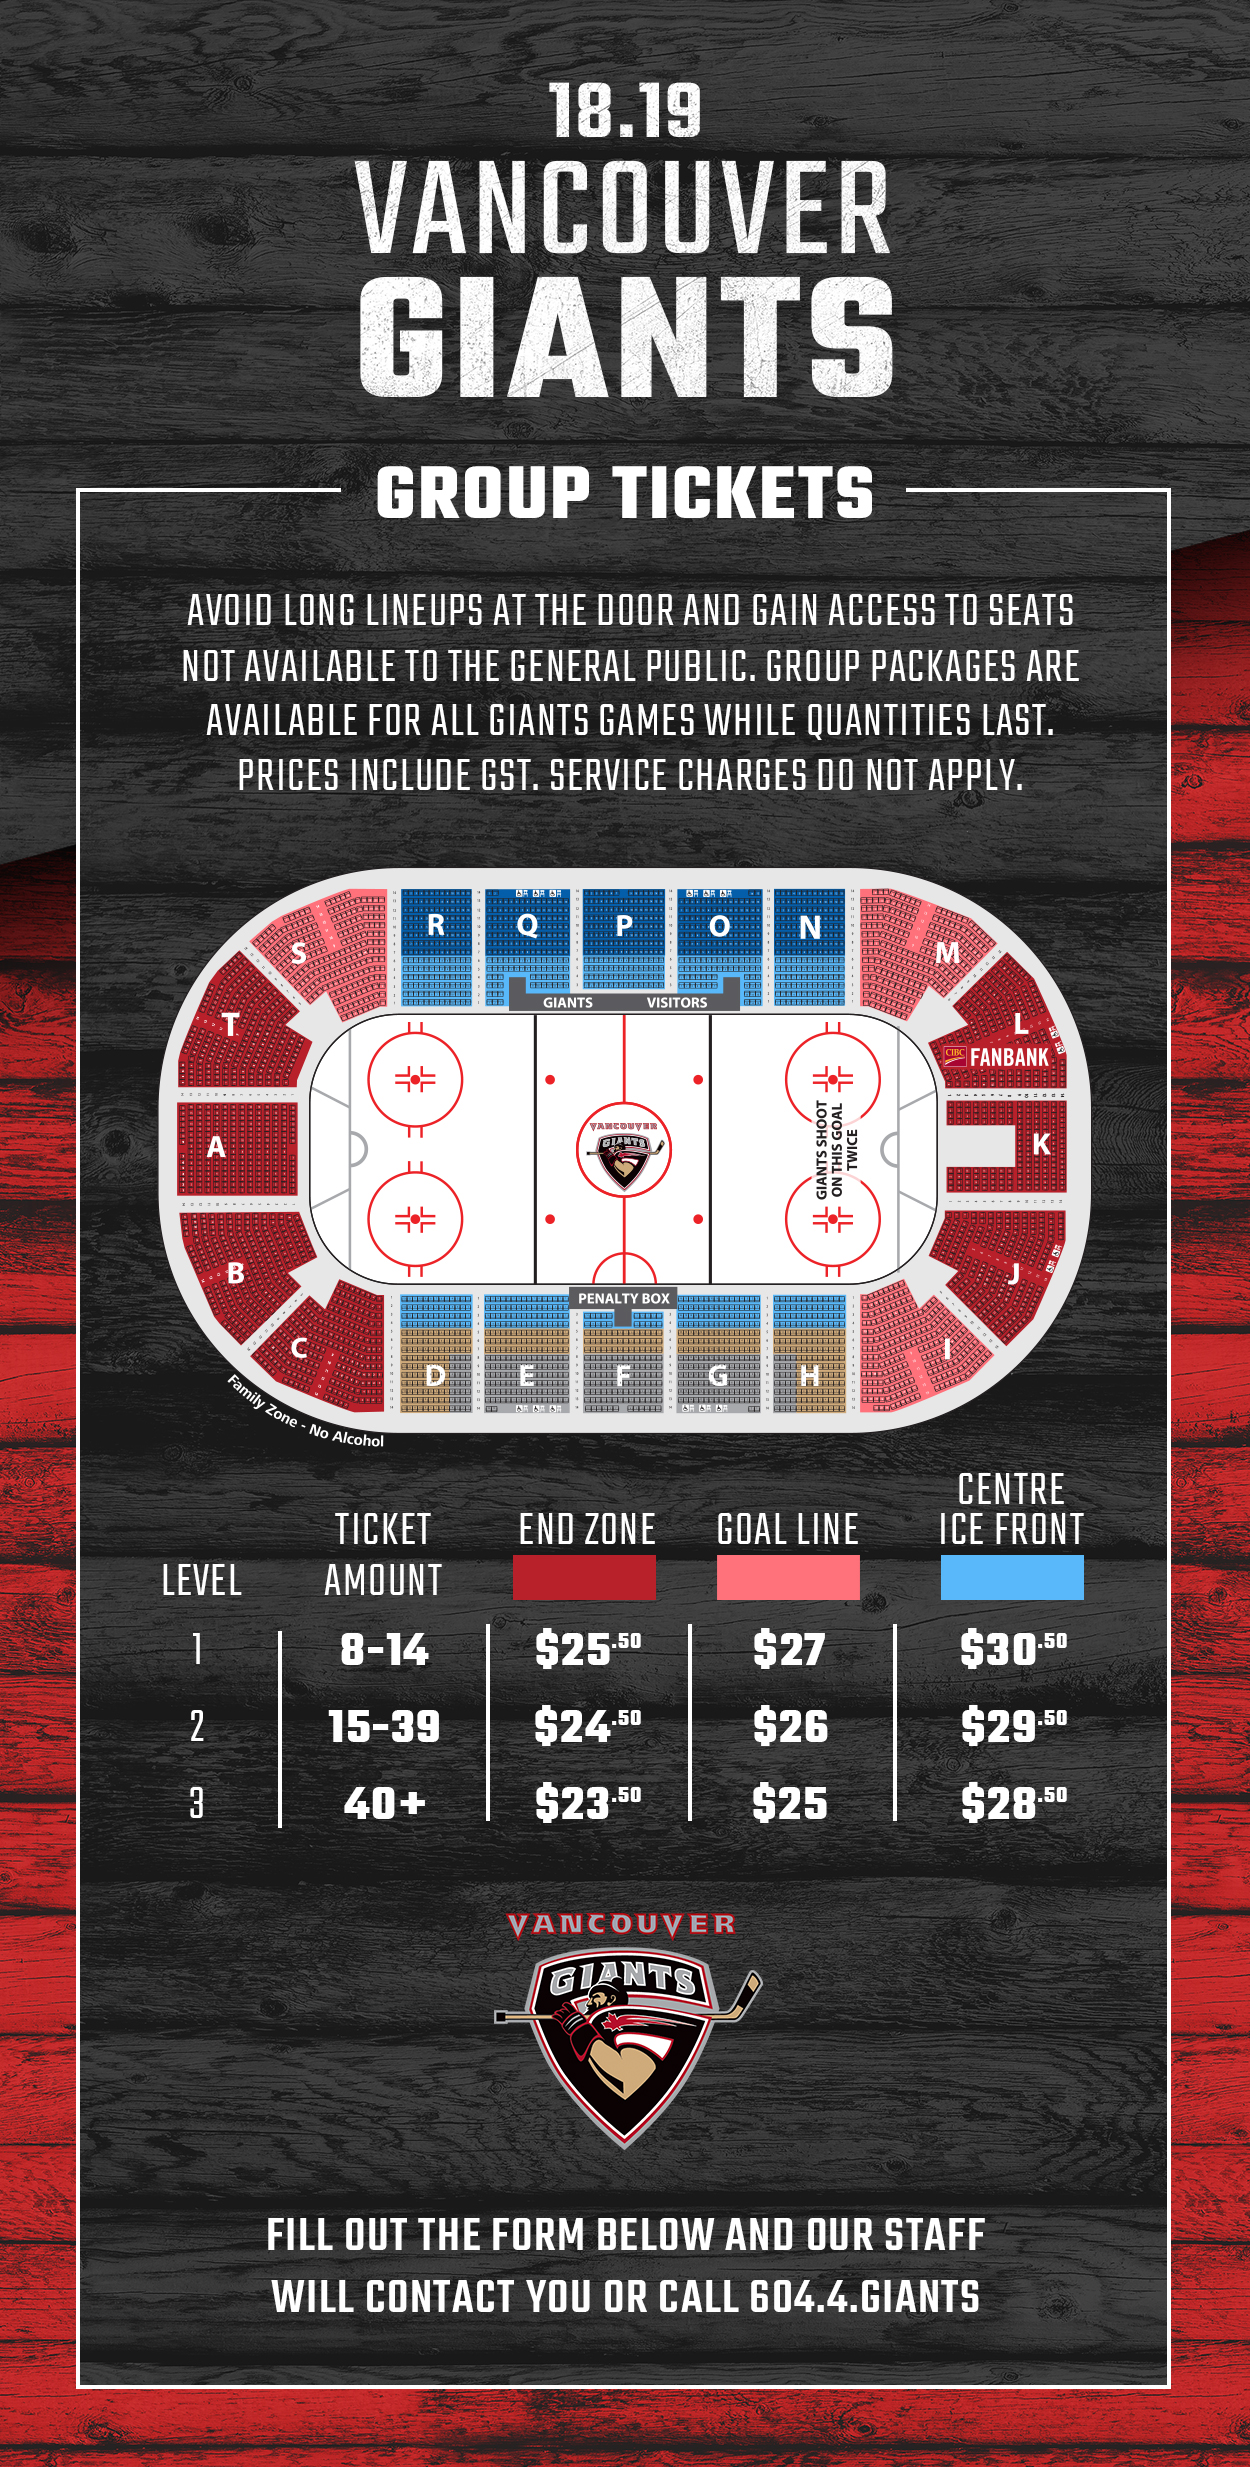 18.19-Pages_GroupTickets_PlayoffsRound3